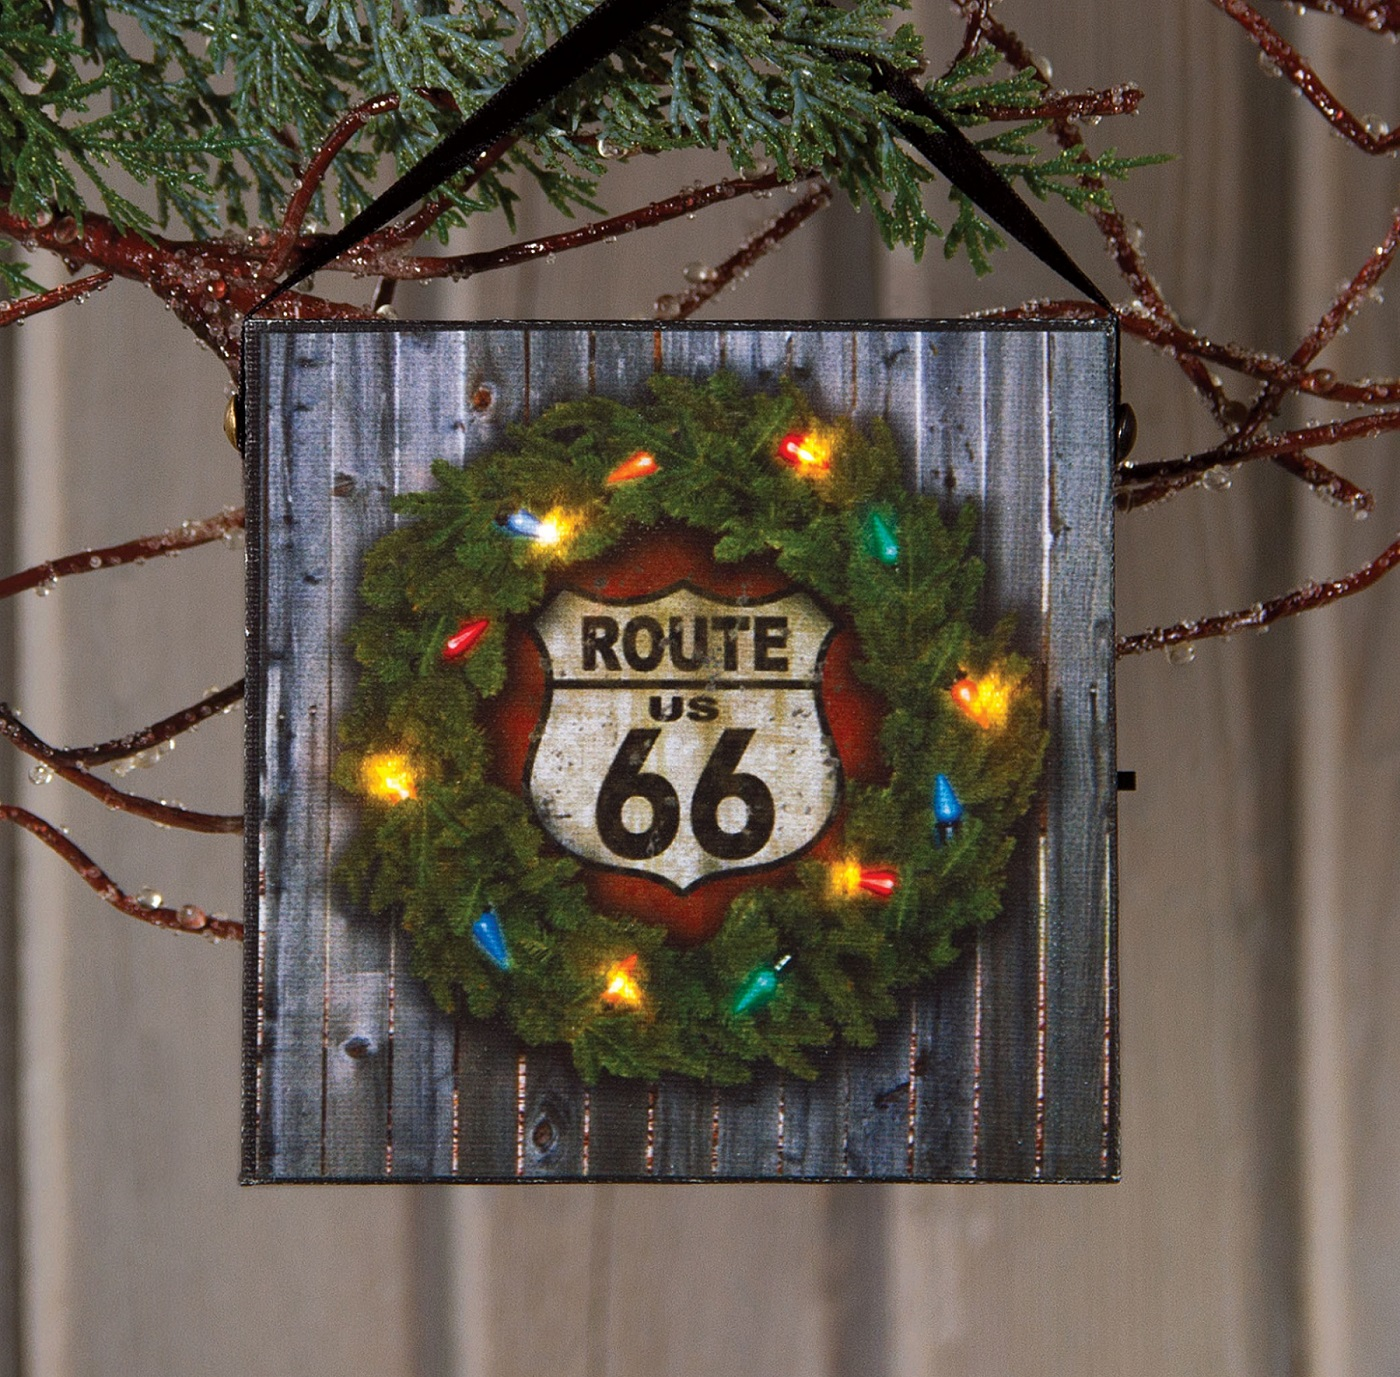 Route 66 Radiance Lighted Canvas Christmas ornament by Ohio Wholesale